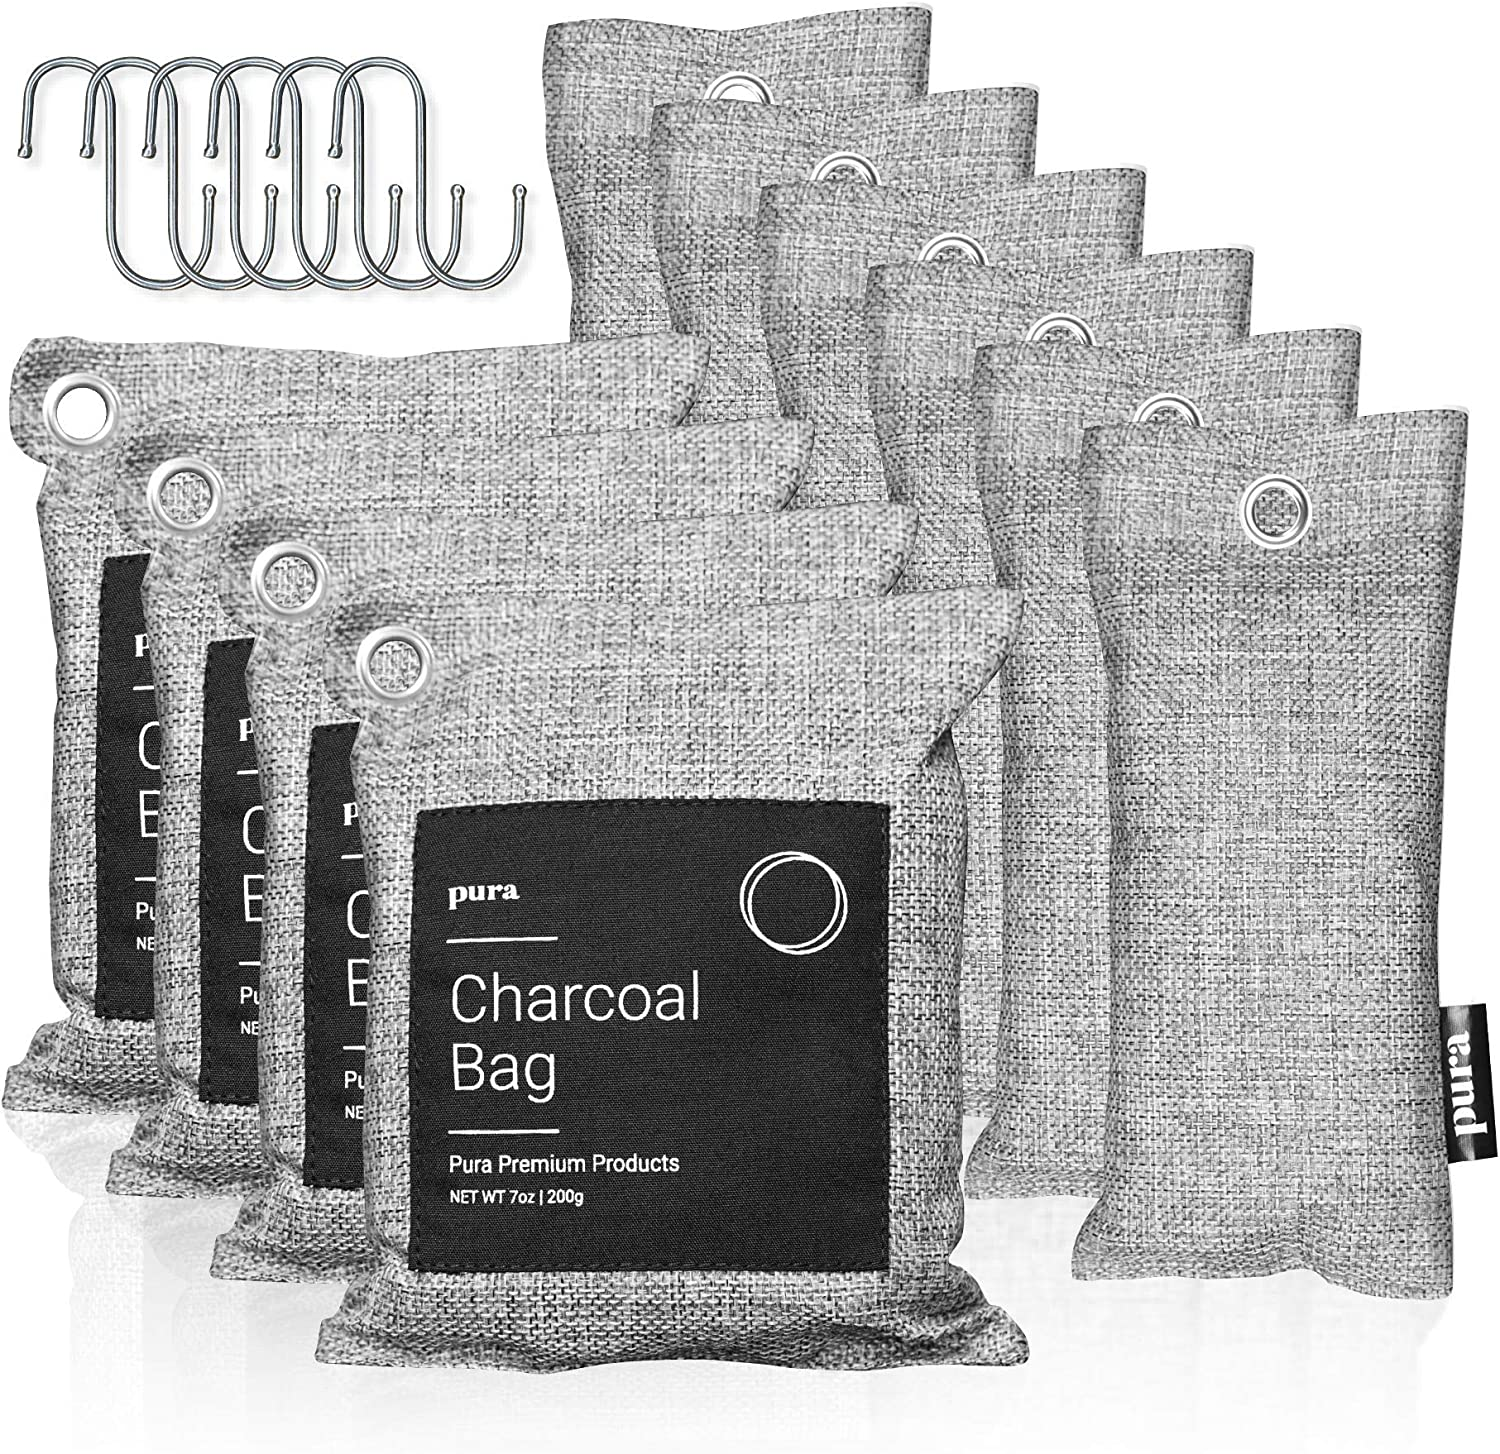 Pura Premium Sales for sale Activated Charcoal Bags Absorber Piece Set Cheap mail order sales 16 Odor